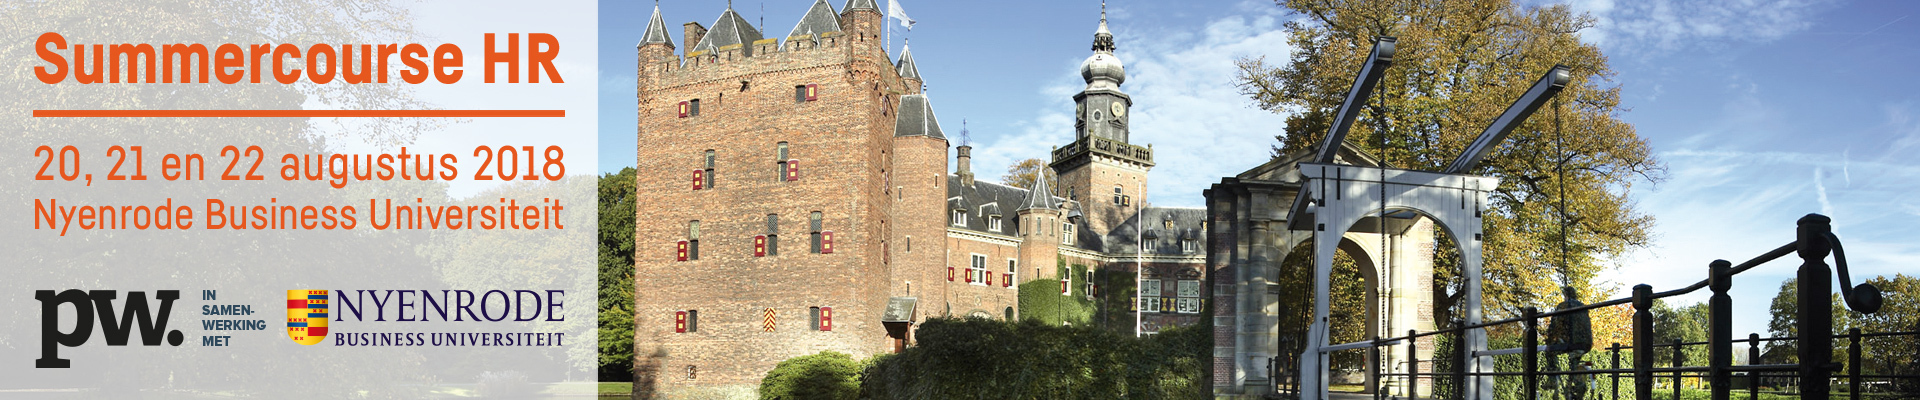 Nyenrode Summercourse HR